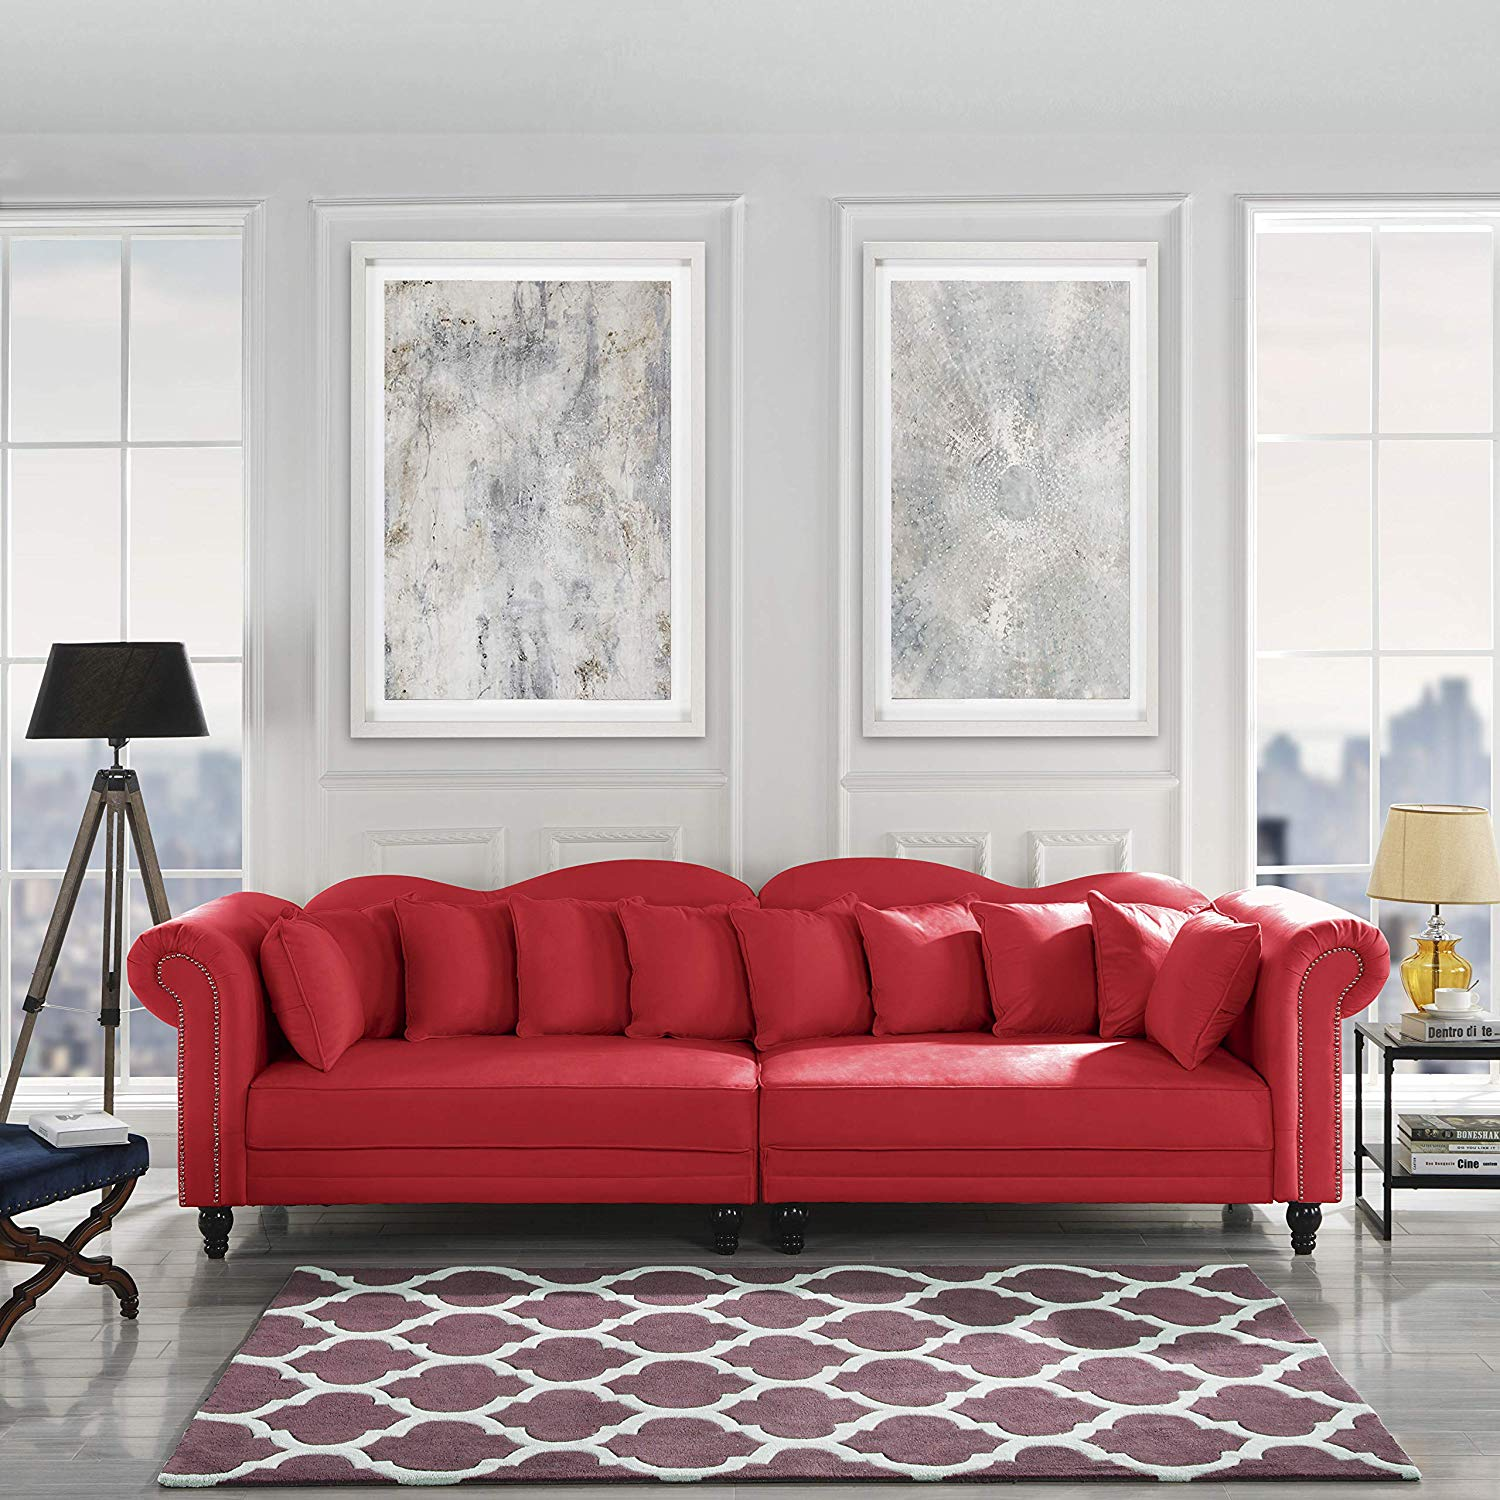 Classic Velvet Chesterfield Scroll Arm Large Living Room Sofa (Red)